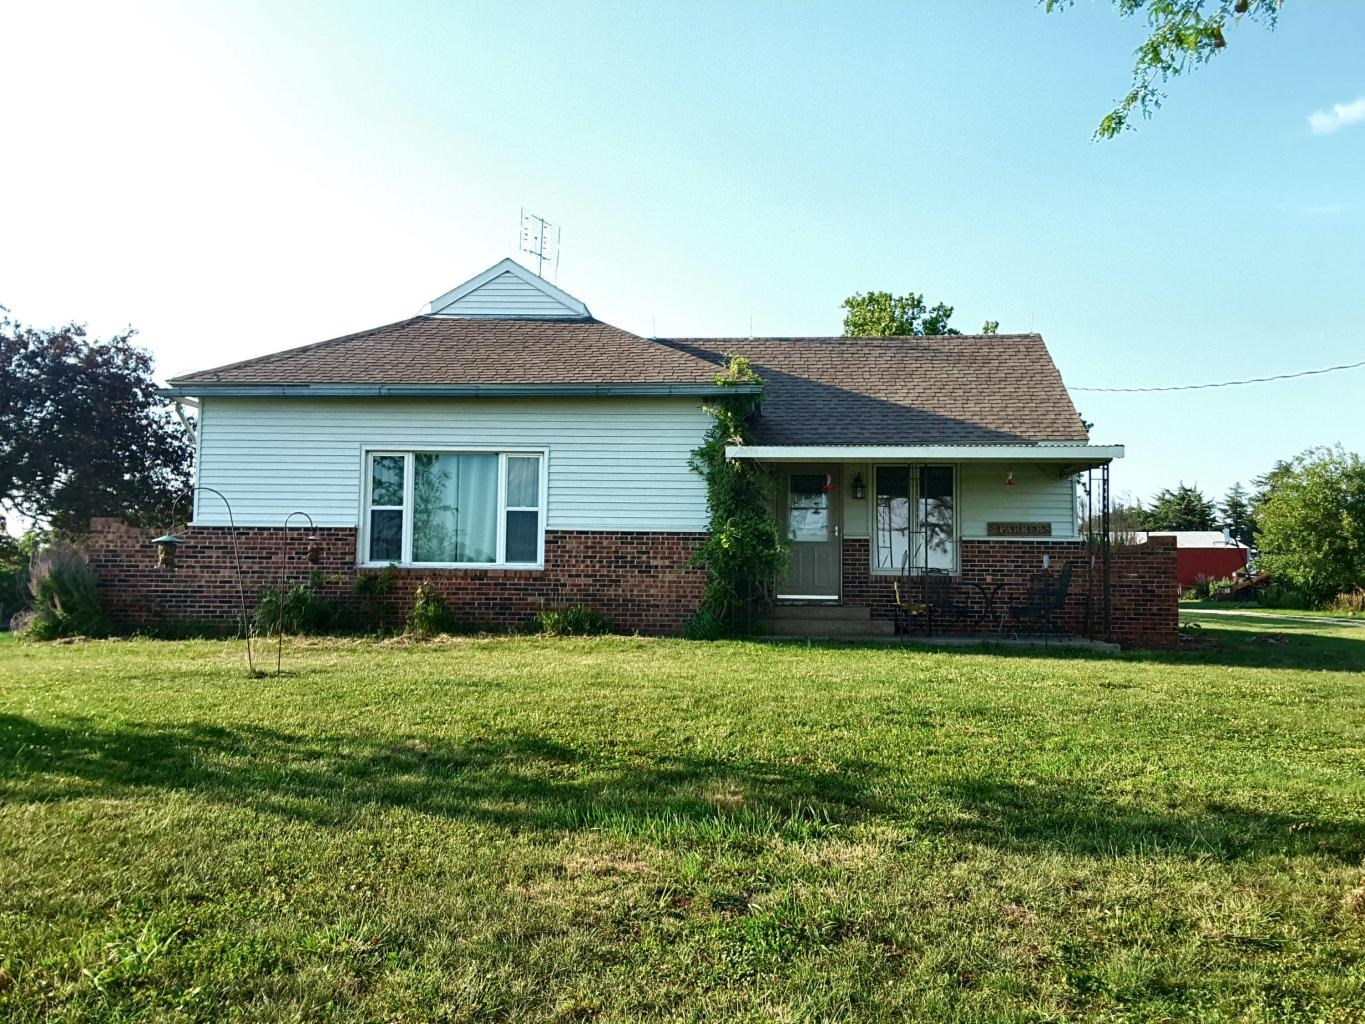 LARGE 2 BEDROOM, 1 BATHROOM HOME IN HOPKINS, MO